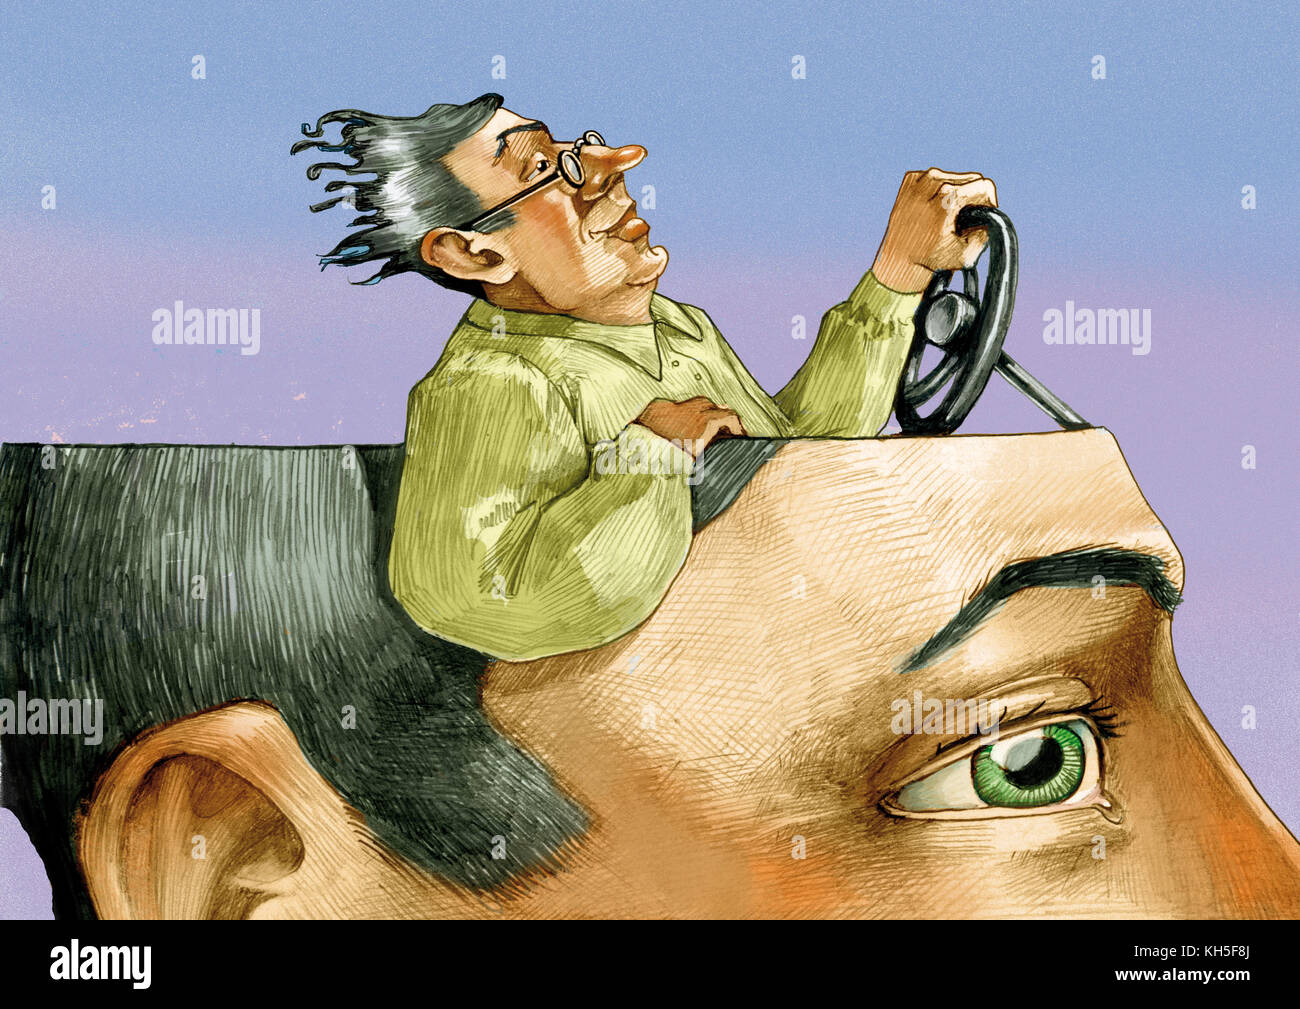 in the head of a man in the foreground there is a man riding relaxed and confident of himself - Stock Image